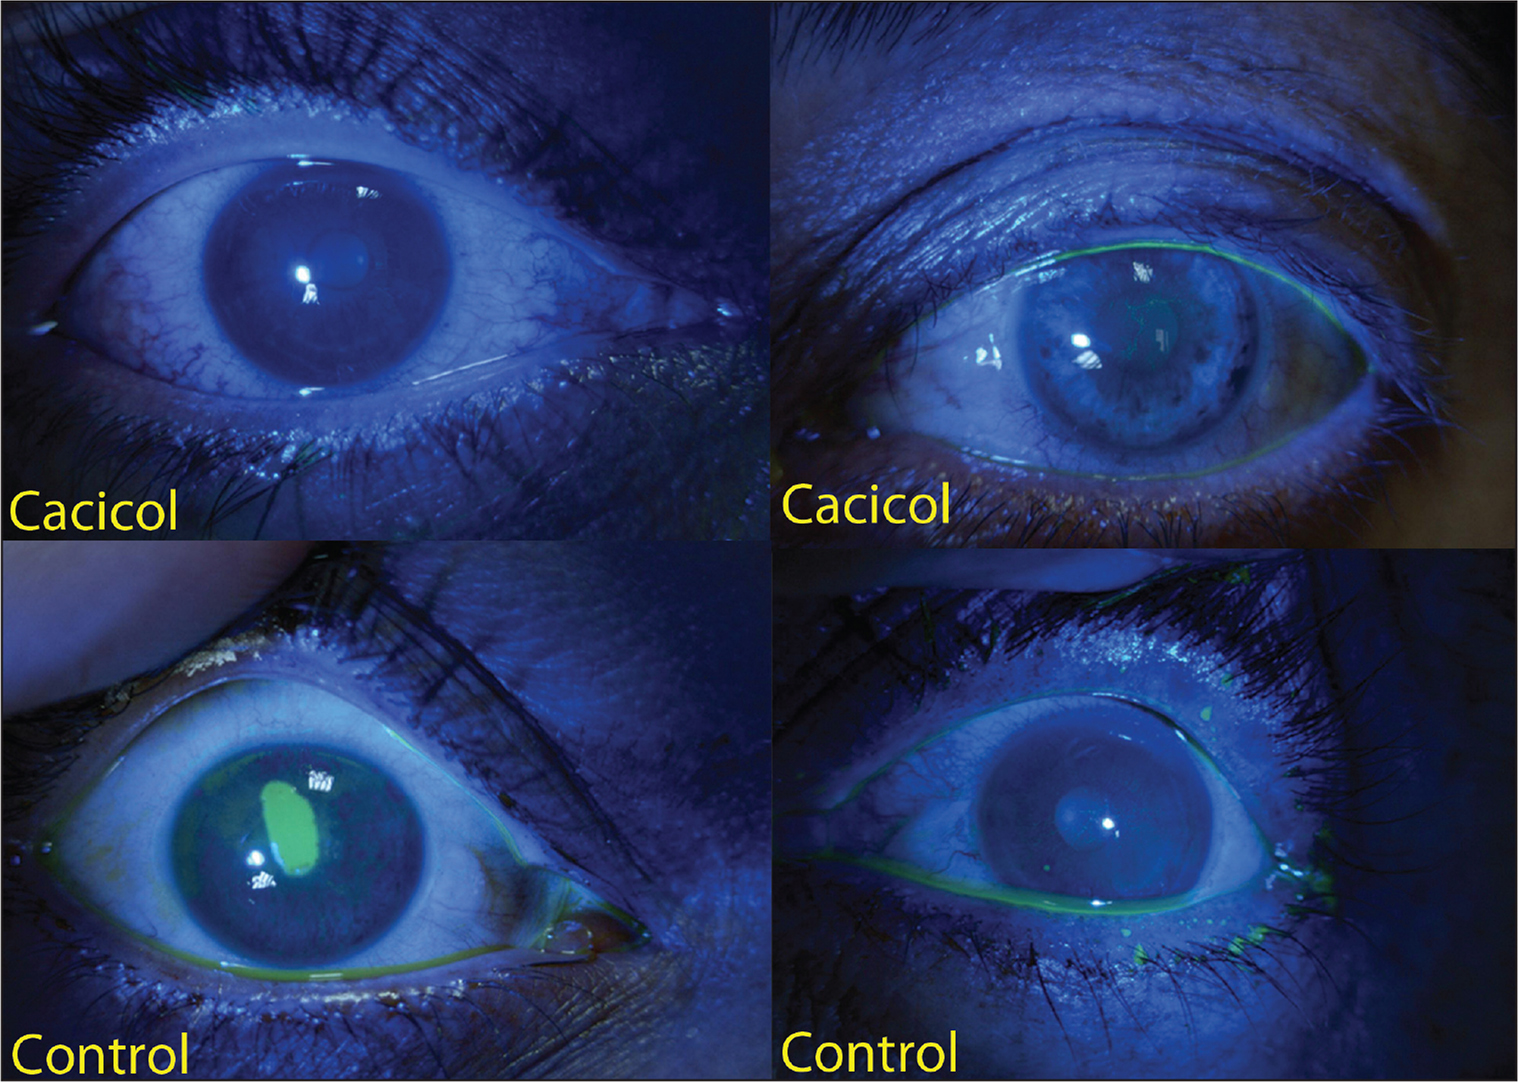 Different corneal healing patterns in ReGeneraTing Agent (RGTA) (OTR4120 Cacicol; Laboratoires Théa, Clermont-Ferrand, France) and control groups on day 2.